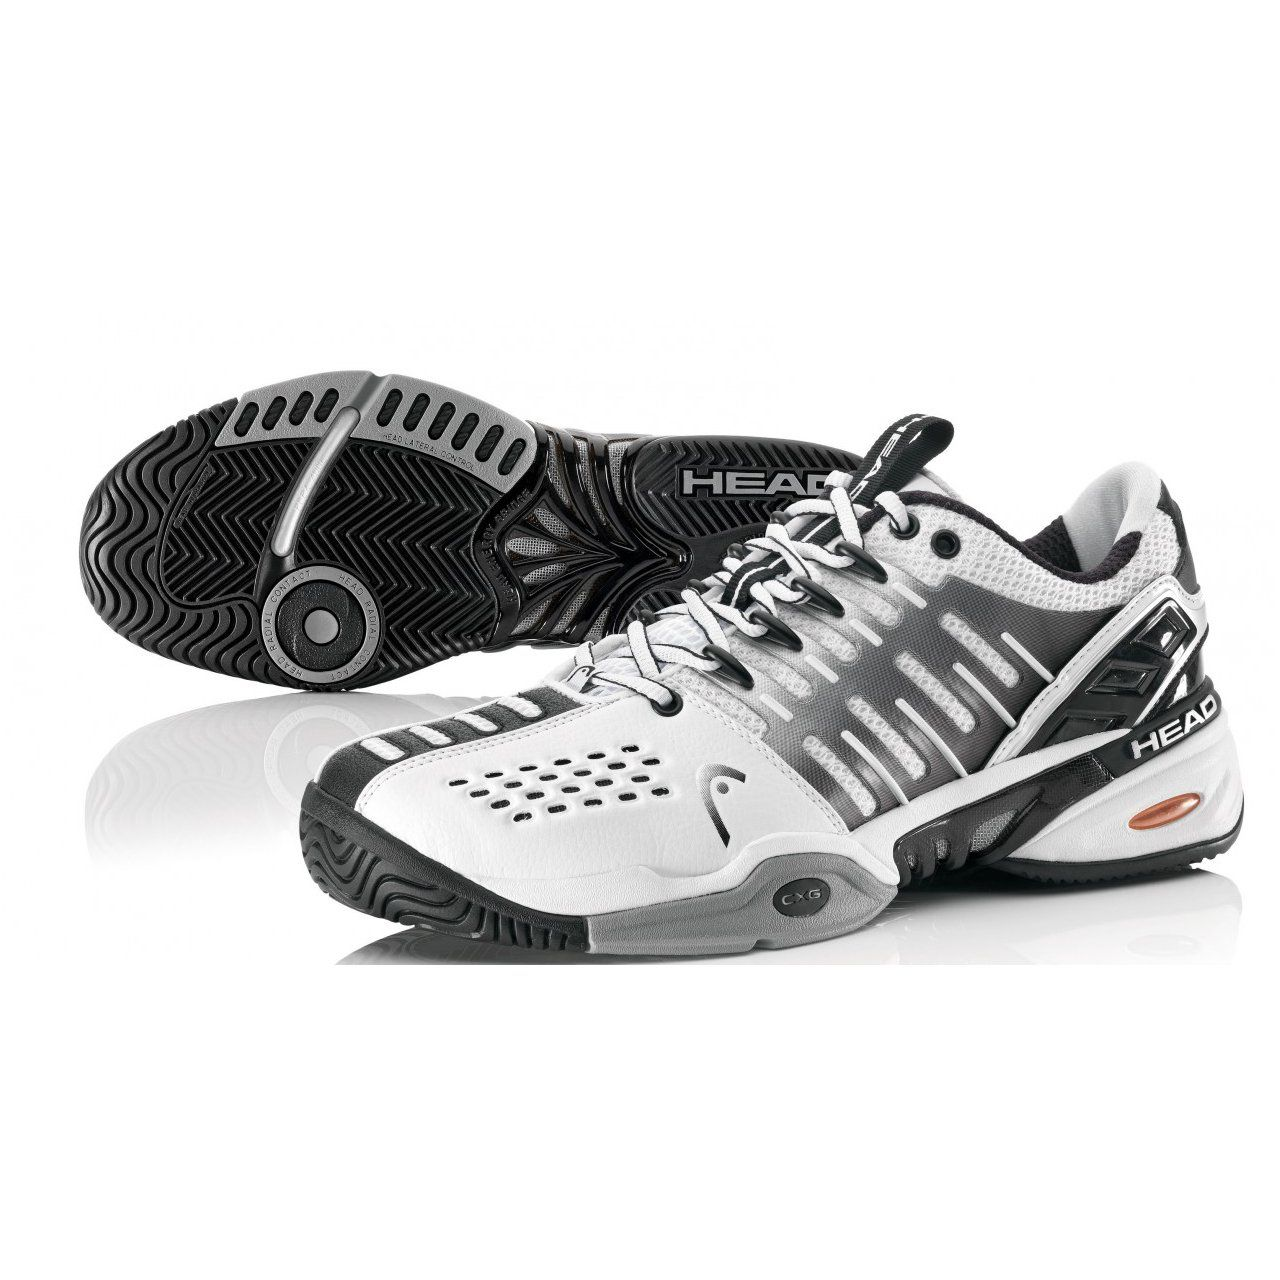 Max Tennis Shoe Best Or Recommended